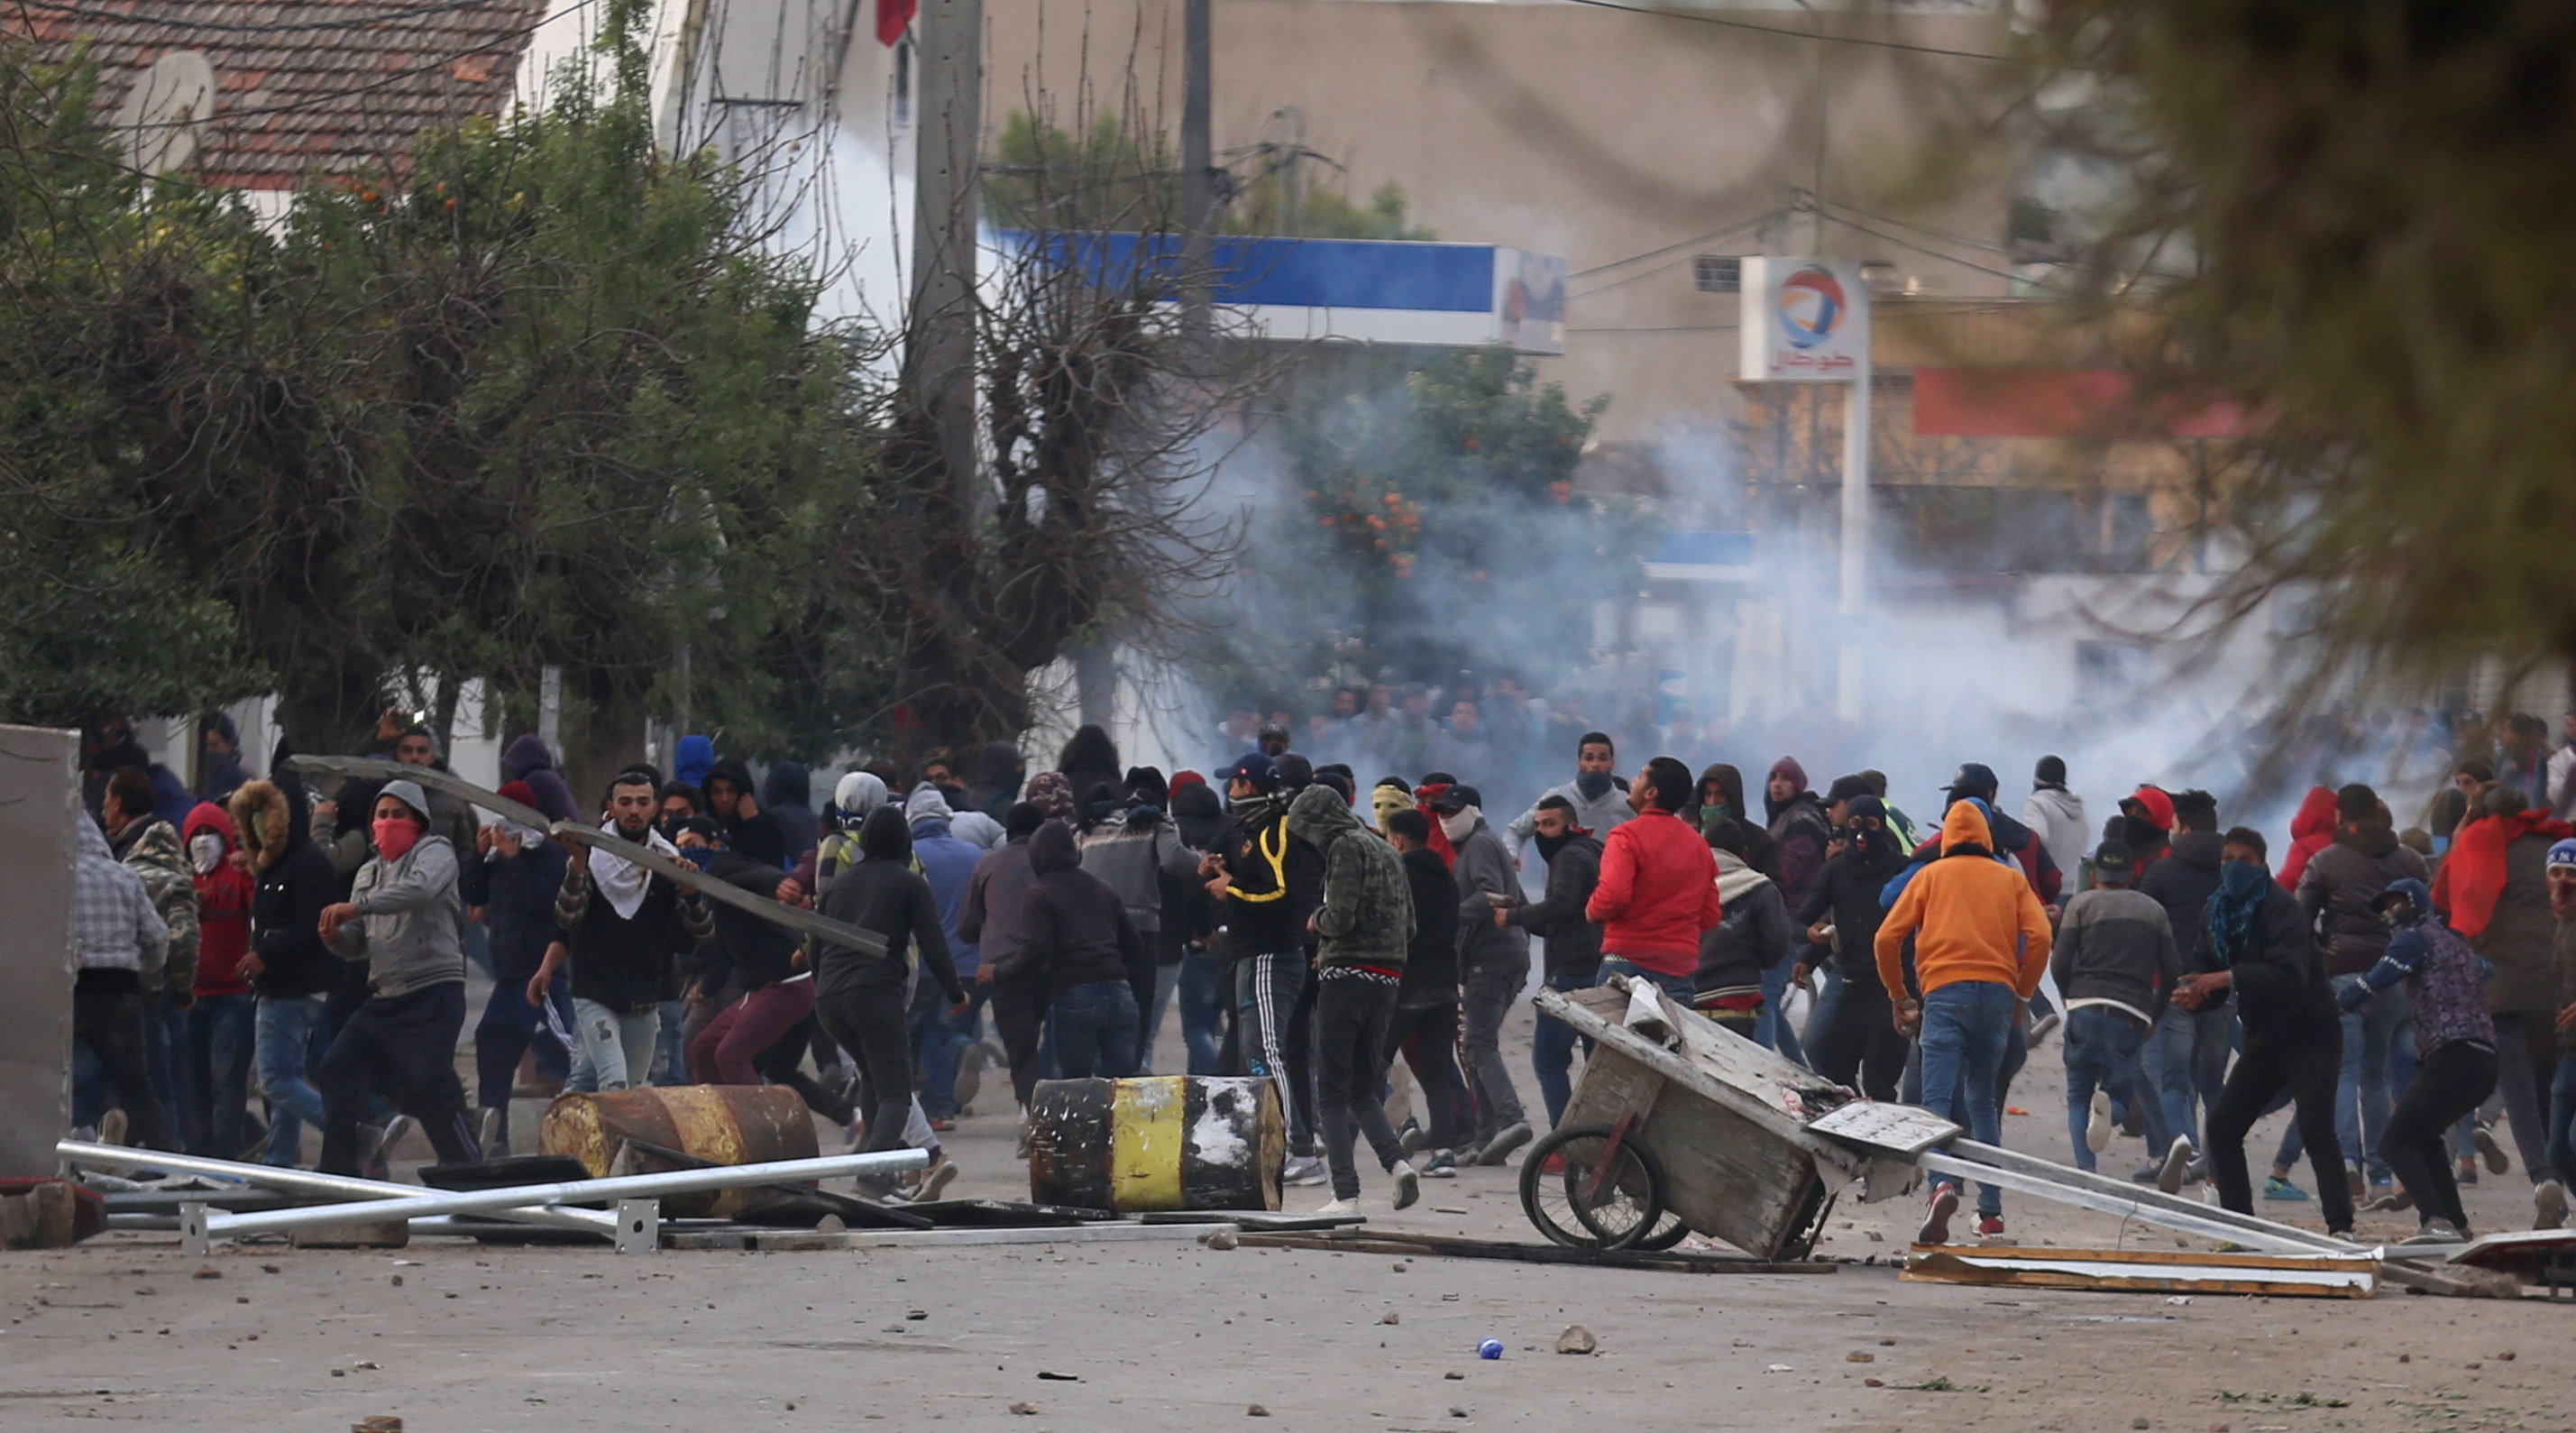 Tunisia arrests 237 in clashes with protesters